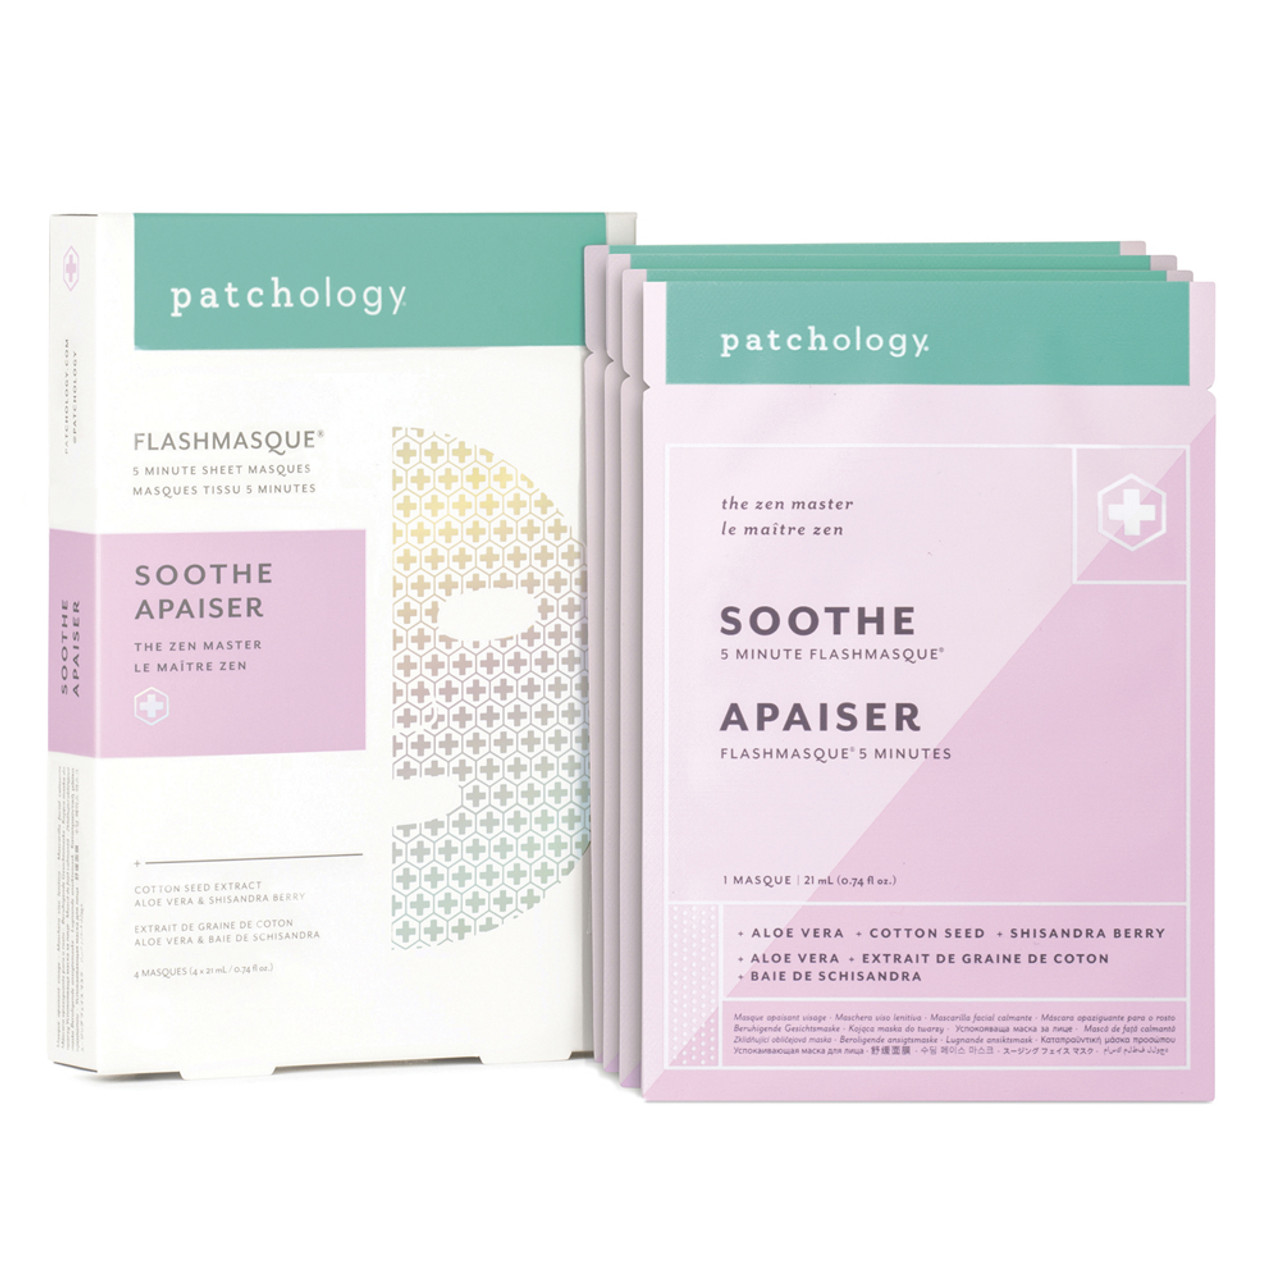 Patchology FlashMasque Soothe (4-Pk)